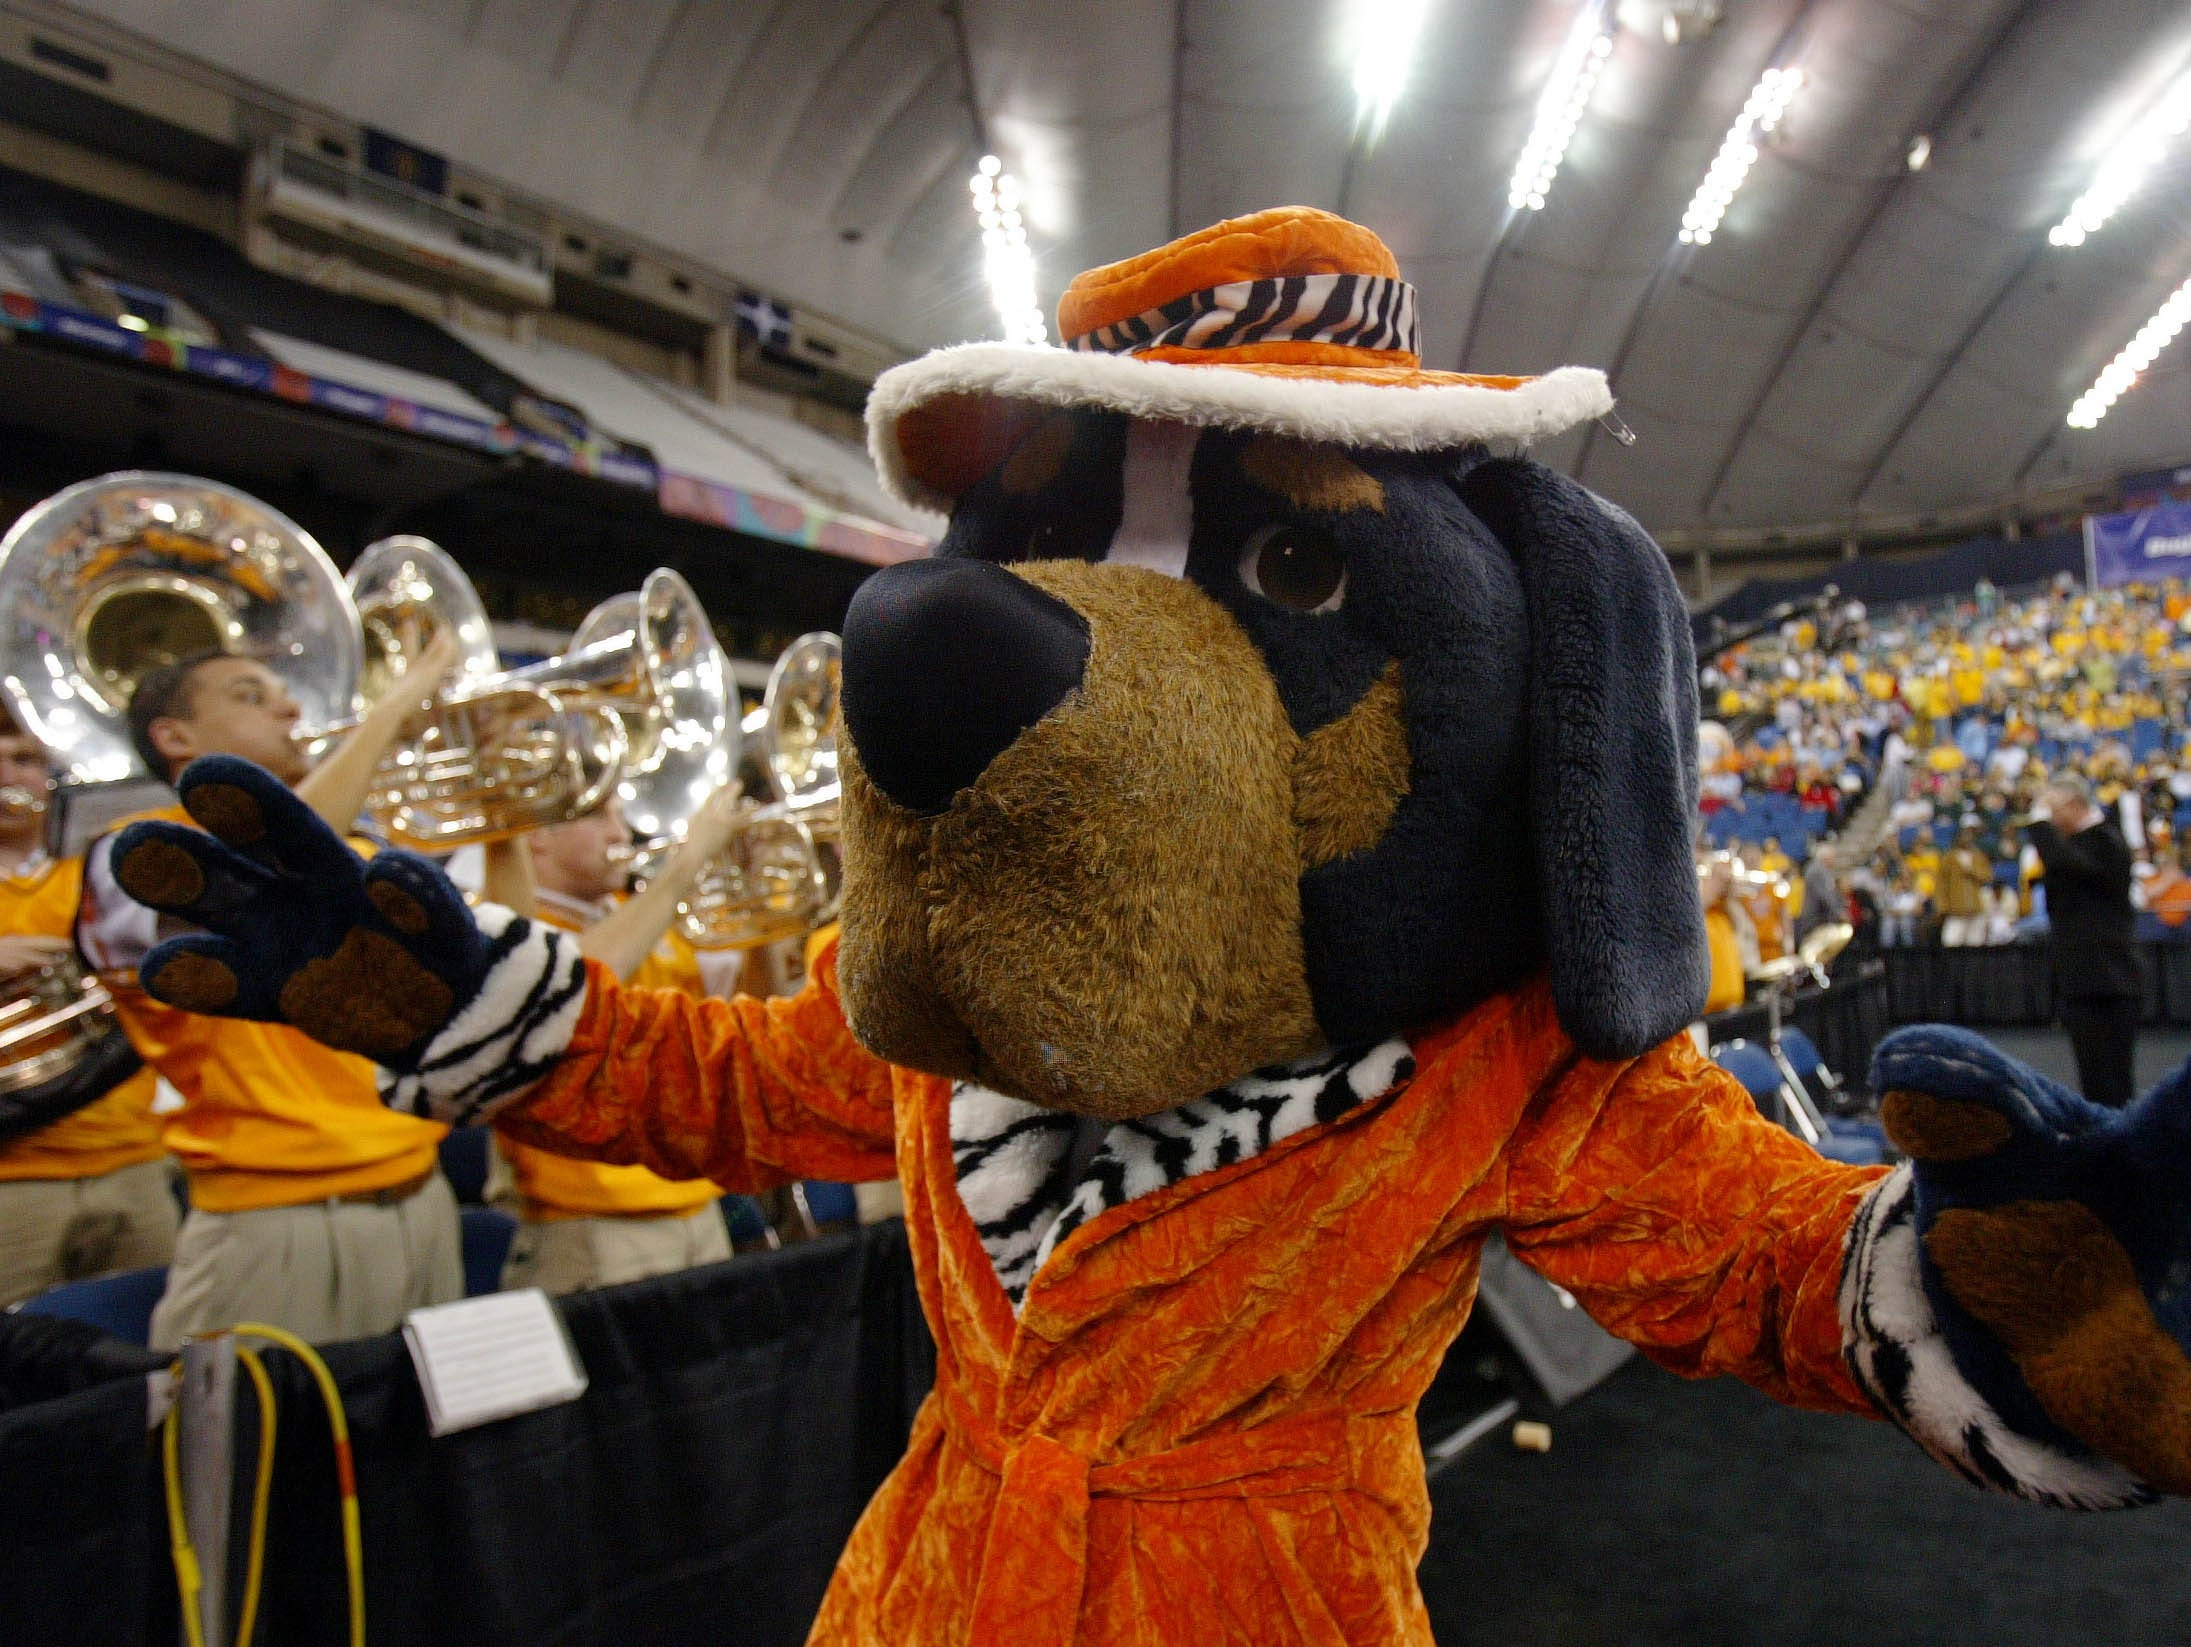 0403ncaa4.cc.jpg---sports---University of Tennessee mascot Smokey and the Pride of the Soouthland Band rev up the fans during the semifinal game of the Women's Final Four in Indianapolis. Michigan State advanced by beating the Lady Vols 68-64. 04/03/05